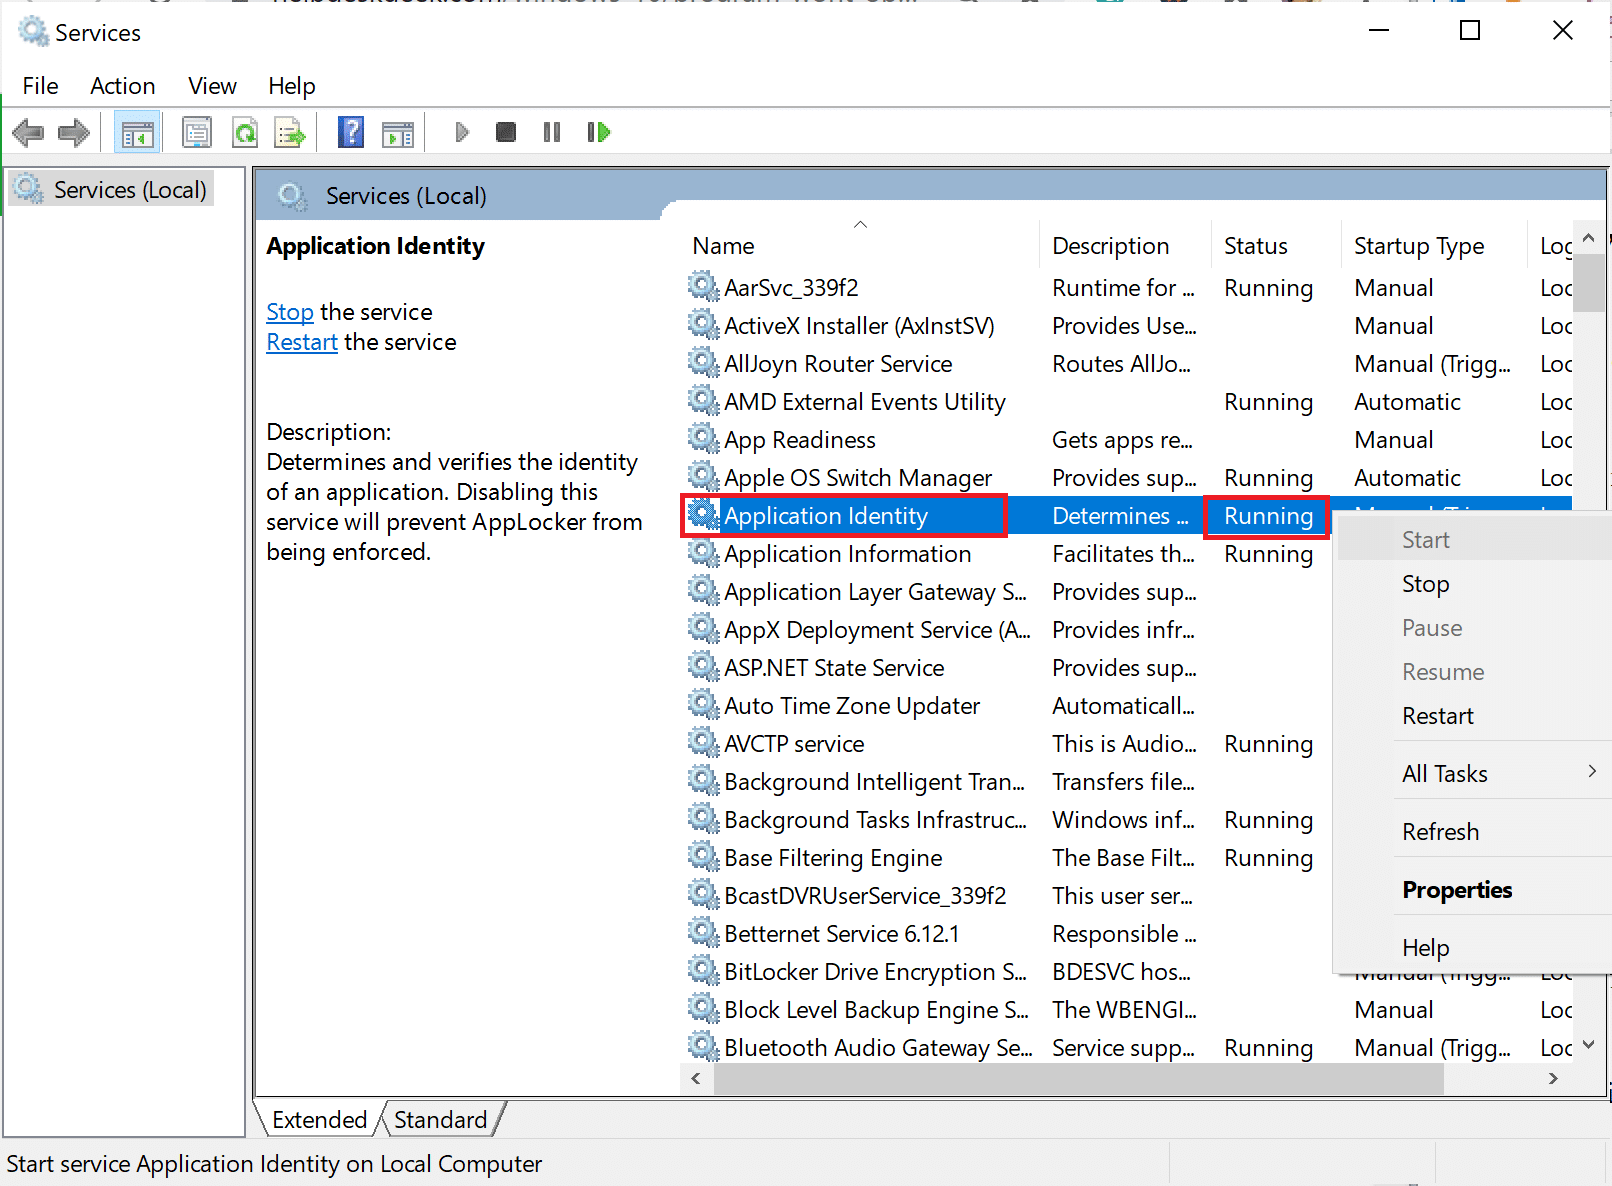 locate Application Identity in the Services window | Fix Windows 10 Apps Not Working